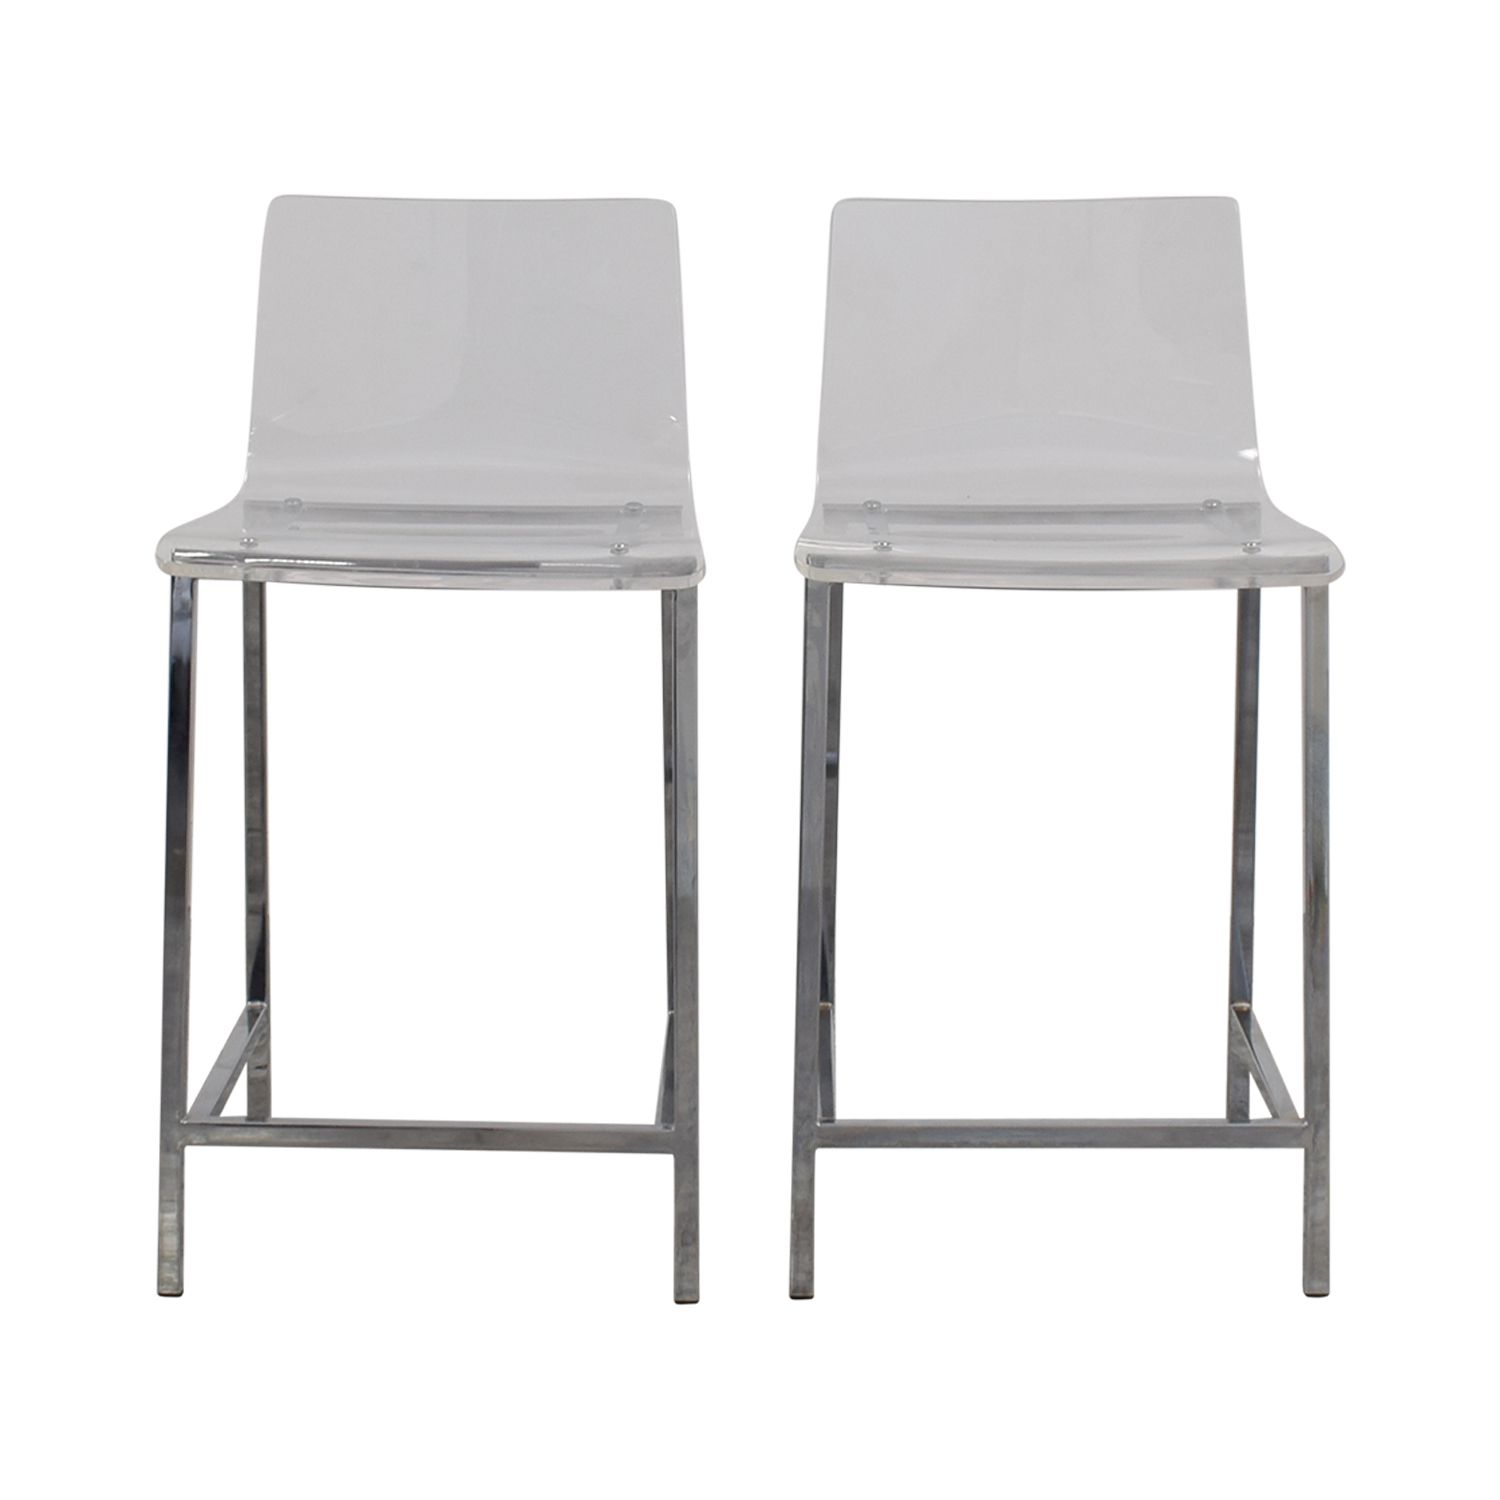 shop CB2 Clear Acrylic Bar Stools CB2 Stools